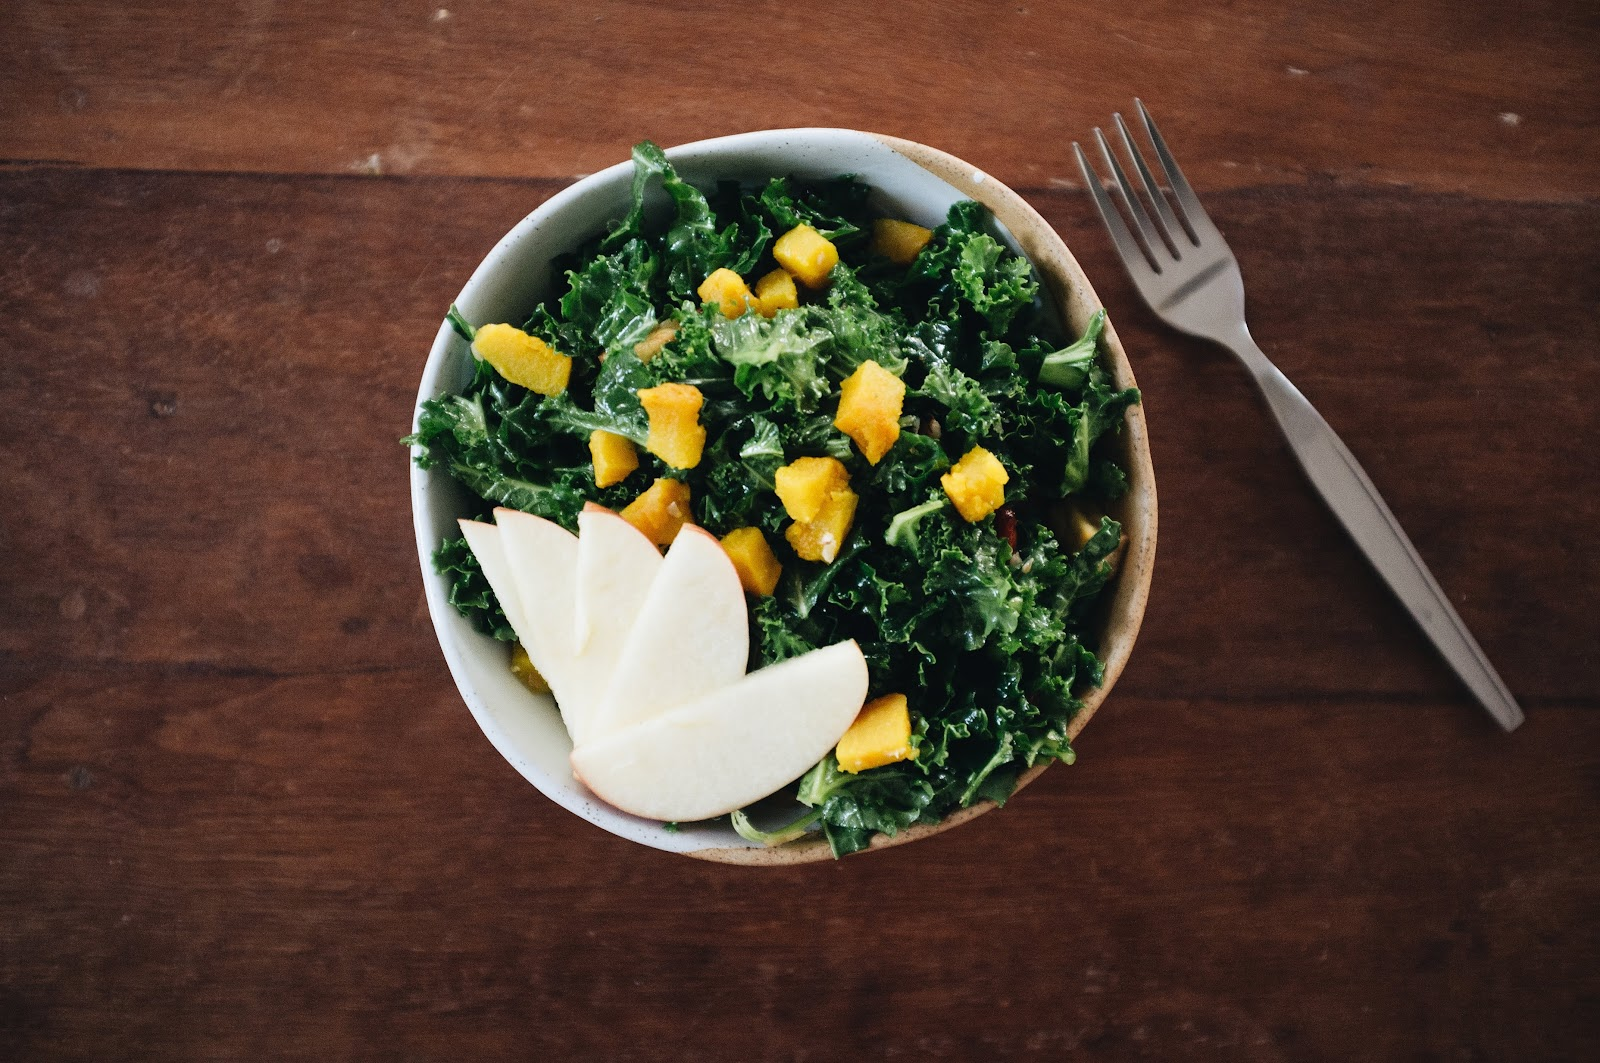 Kale and fruit salad in a bowl on a table with a fork.